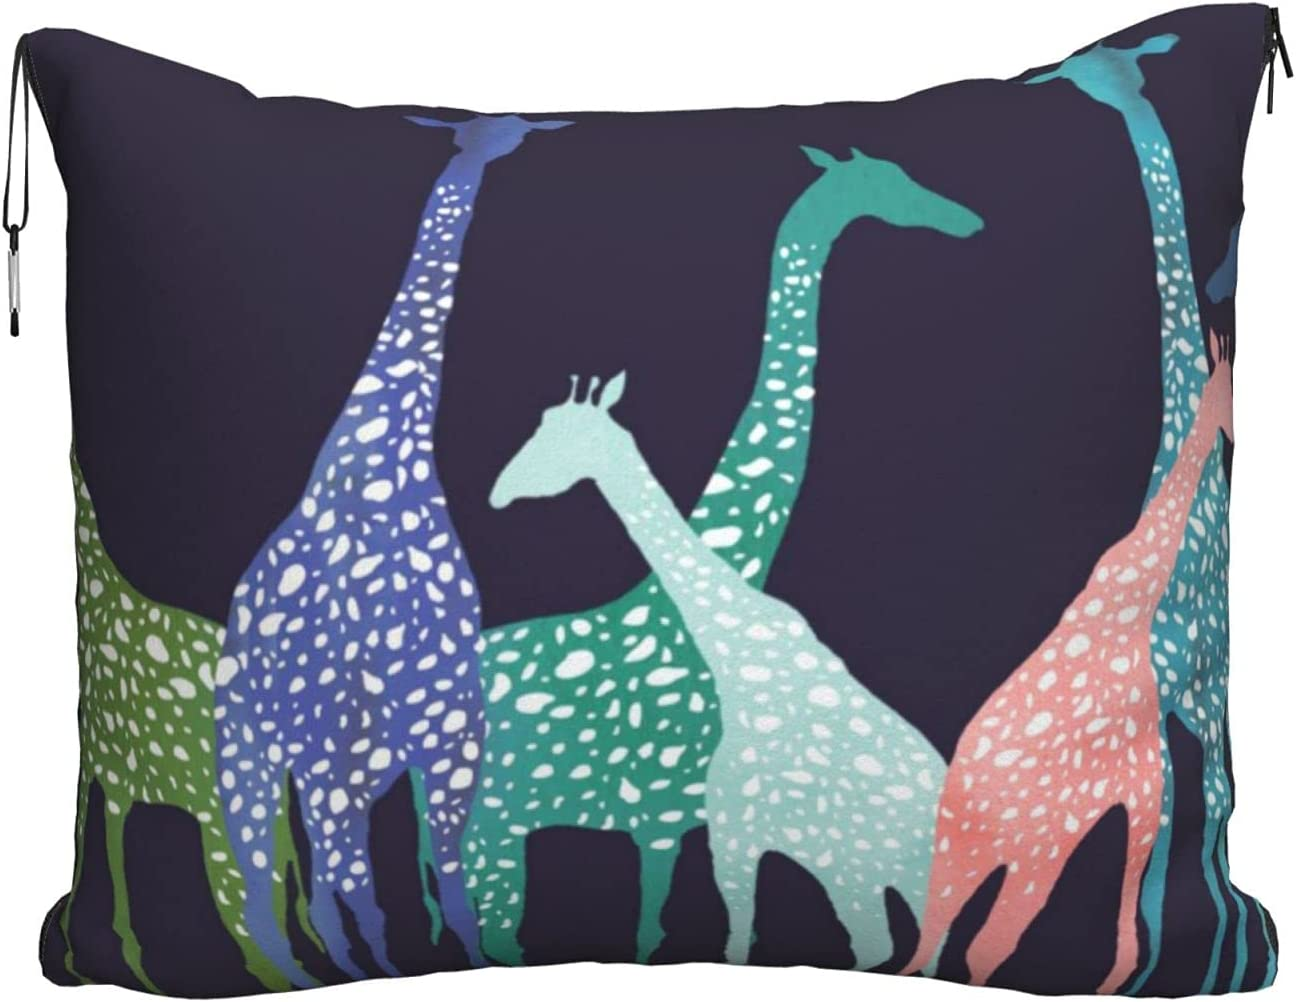 Al sold out. Mescchskcolorful Giraffe Fans Lovers Print New Orleans Mall Blanket Pillow Travel